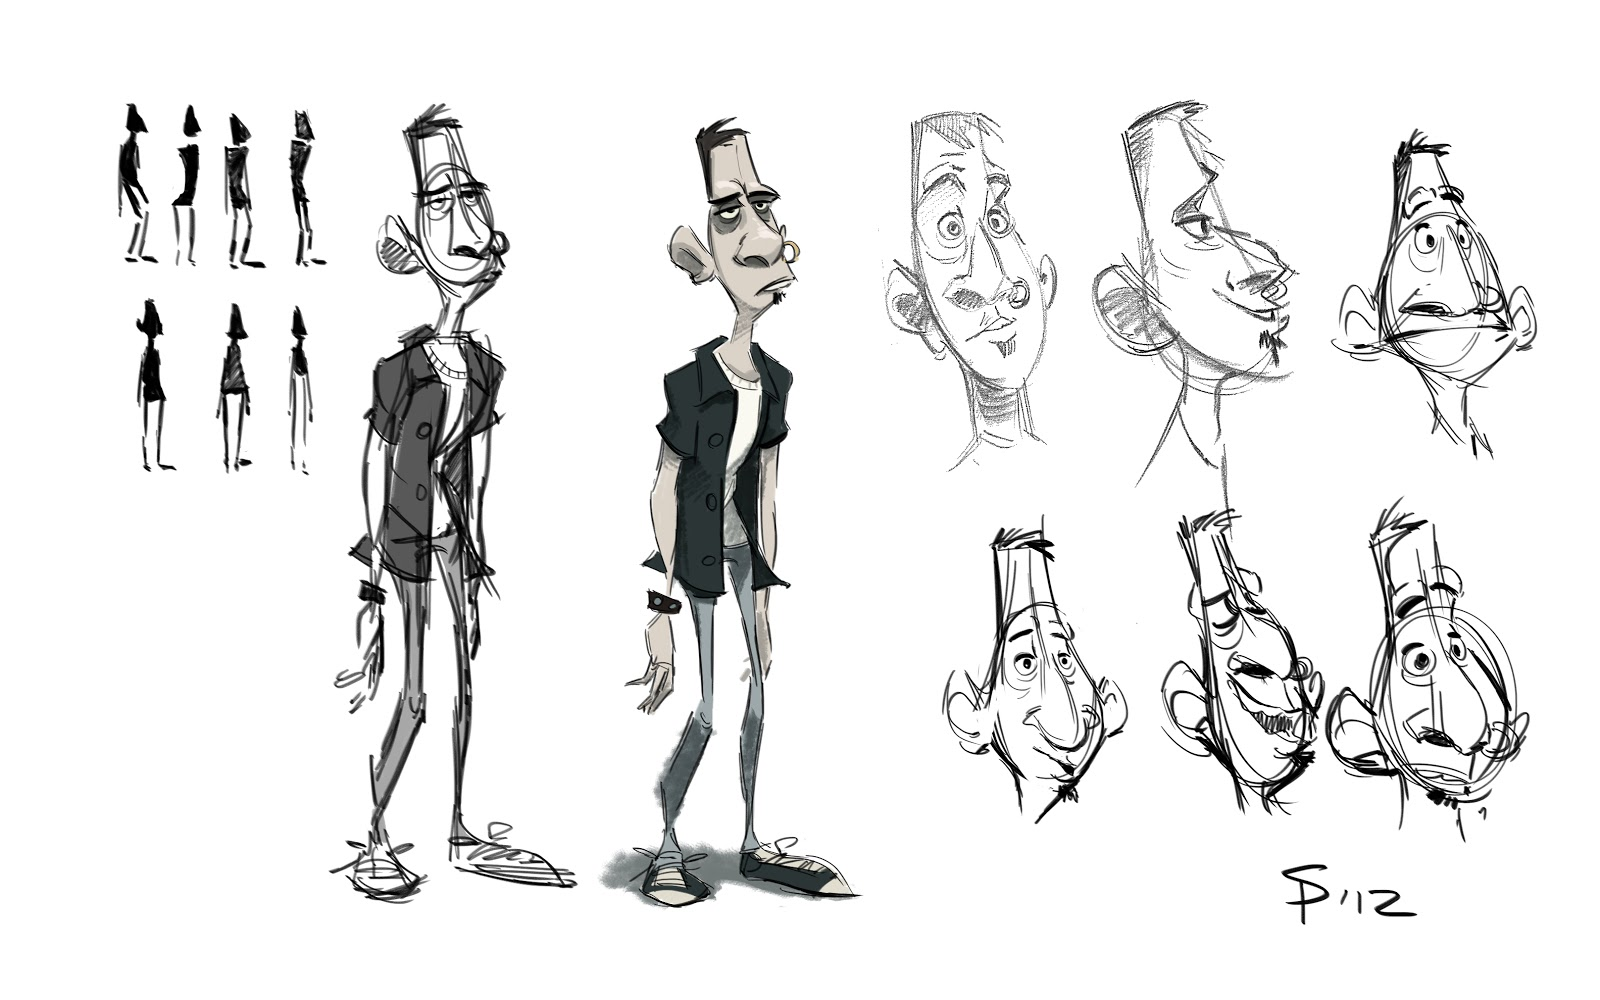 Ys Character Design : What s seanyboy doing character design for project